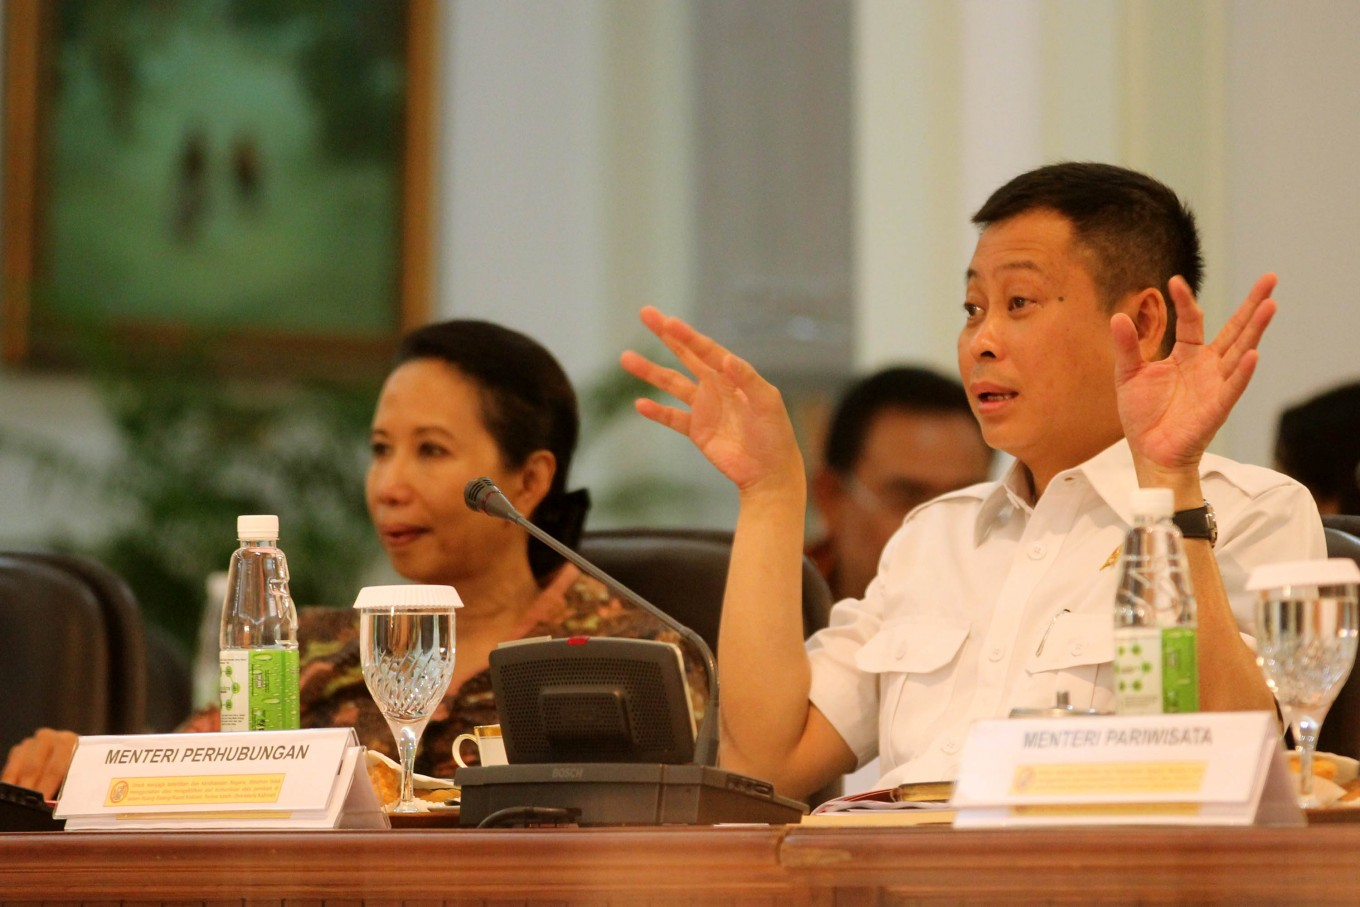 I don't know anything about IT: Transportation Minister Jonan